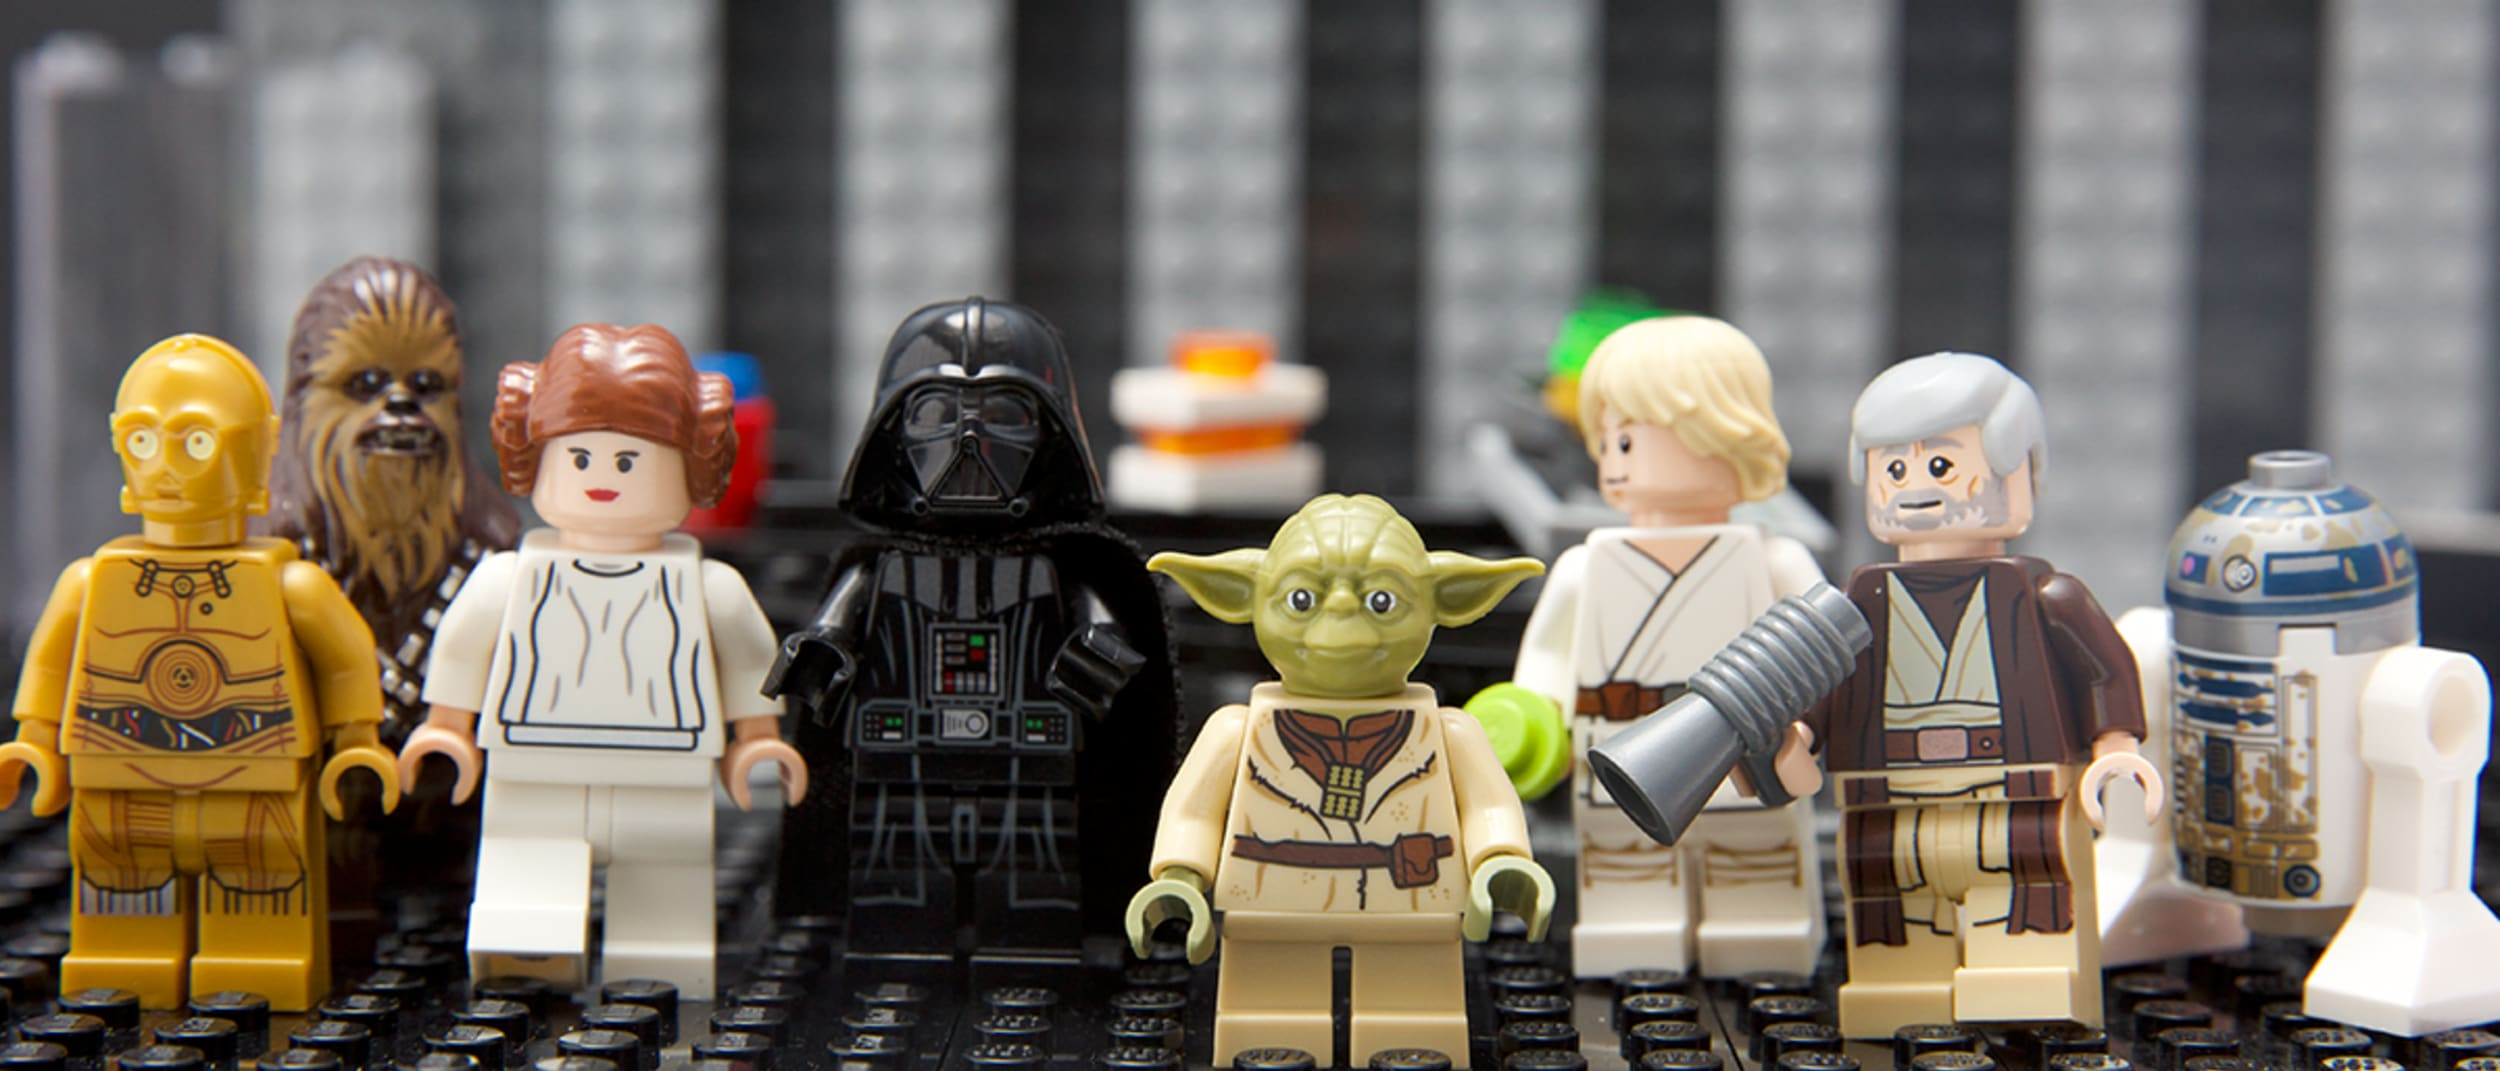 Join in the world's largest LEGO Star Wars unboxing